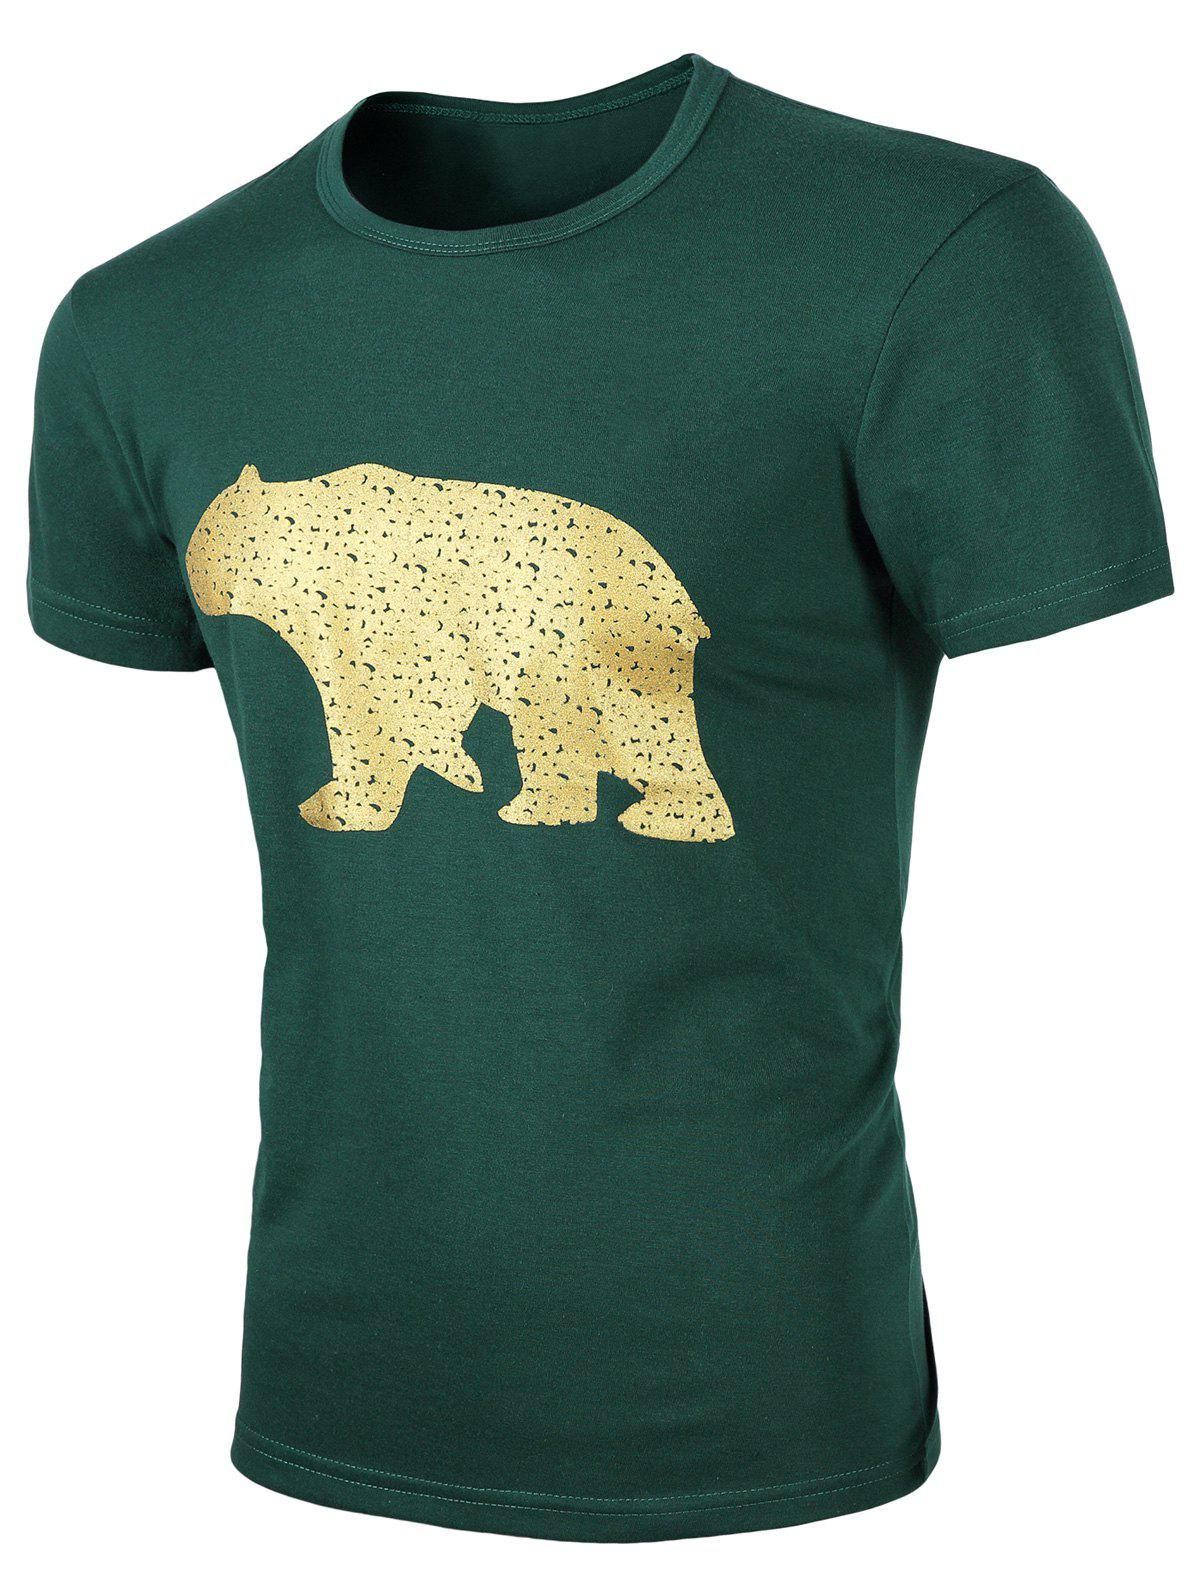 Men's Round Neck Animal Print Short Sleeves T-Shirt - BLACKISH GREEN 3XL